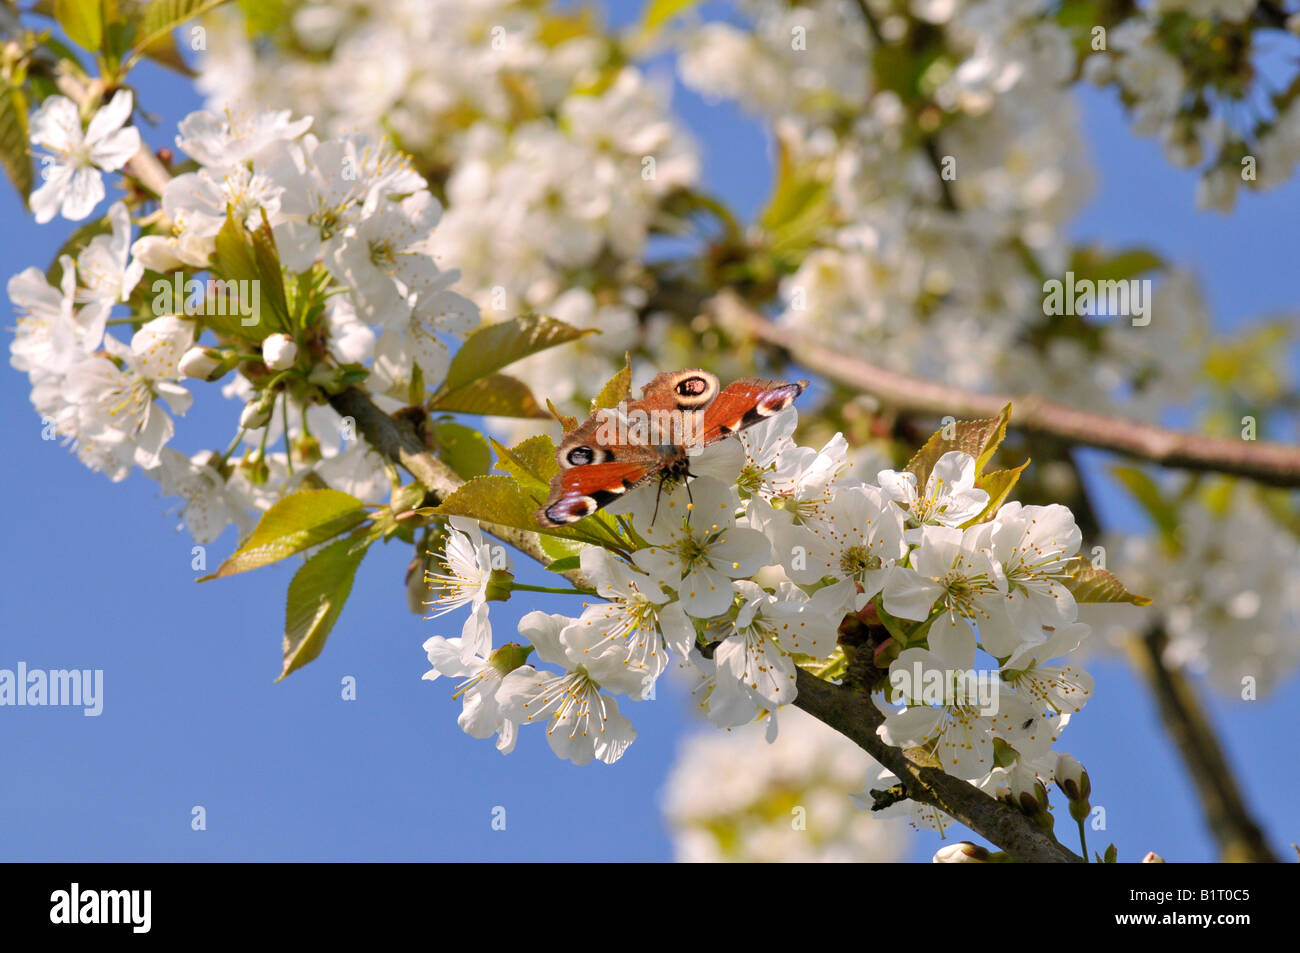 European Peacock Caterpillar Butterfly (Inachis io) perched on a cherry tree blossom (Cerasus) - Stock Image